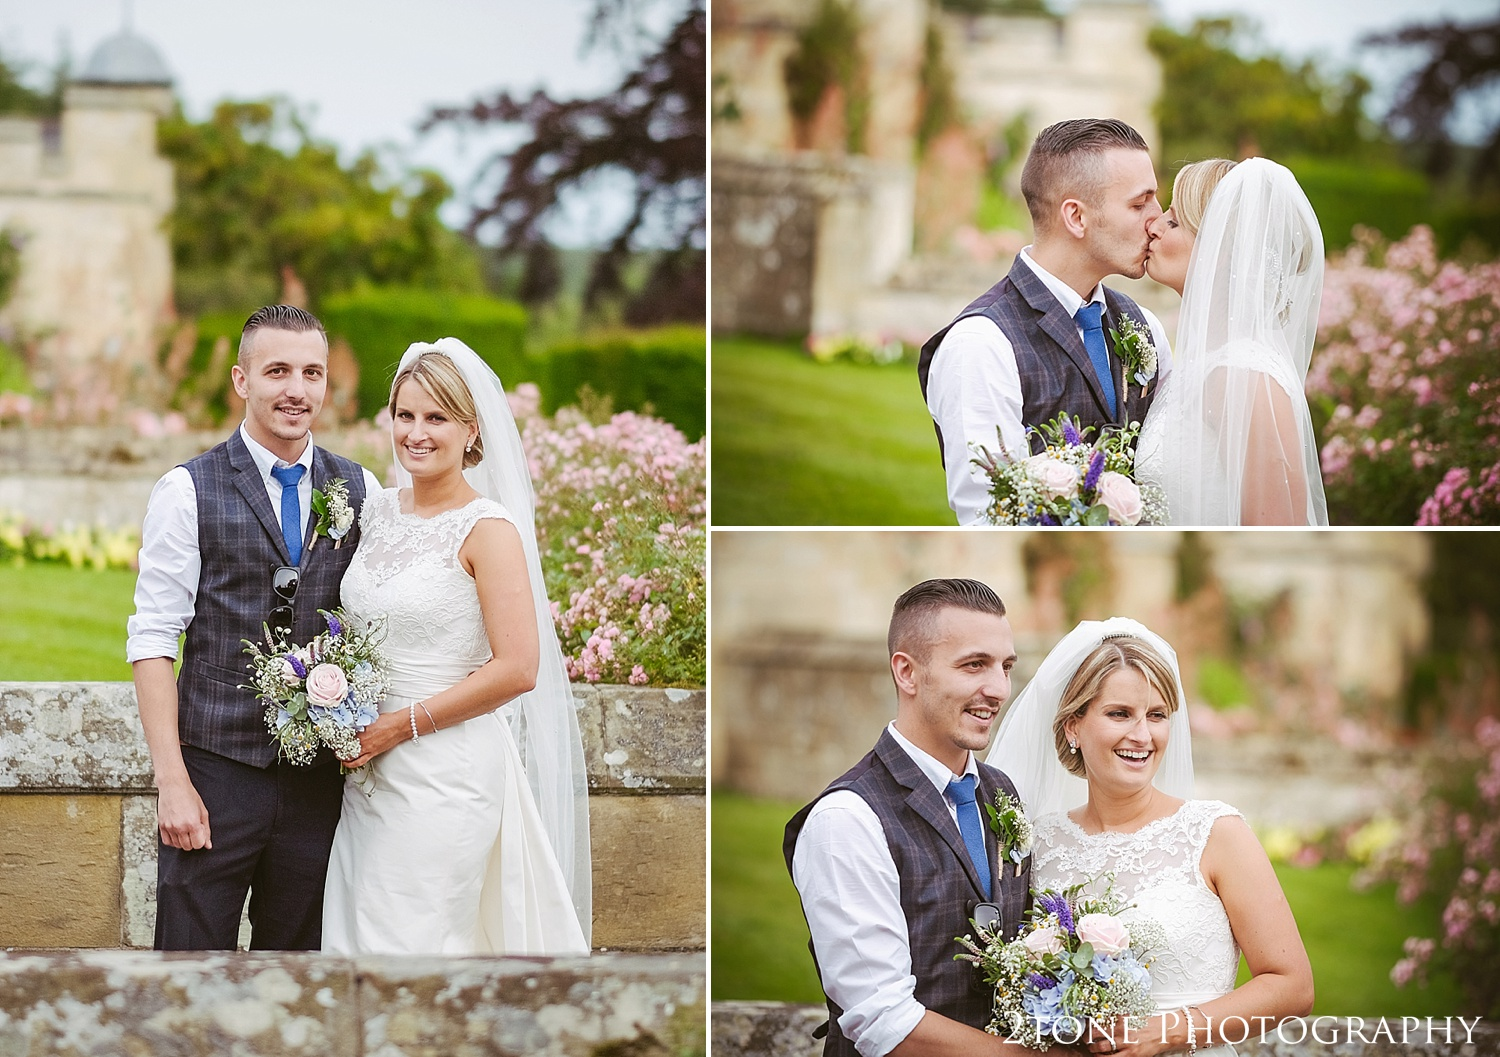 The bride and groom.  Wedding photography at Guyzance Hall by wedding photographers www.2tonephotography.co.uk